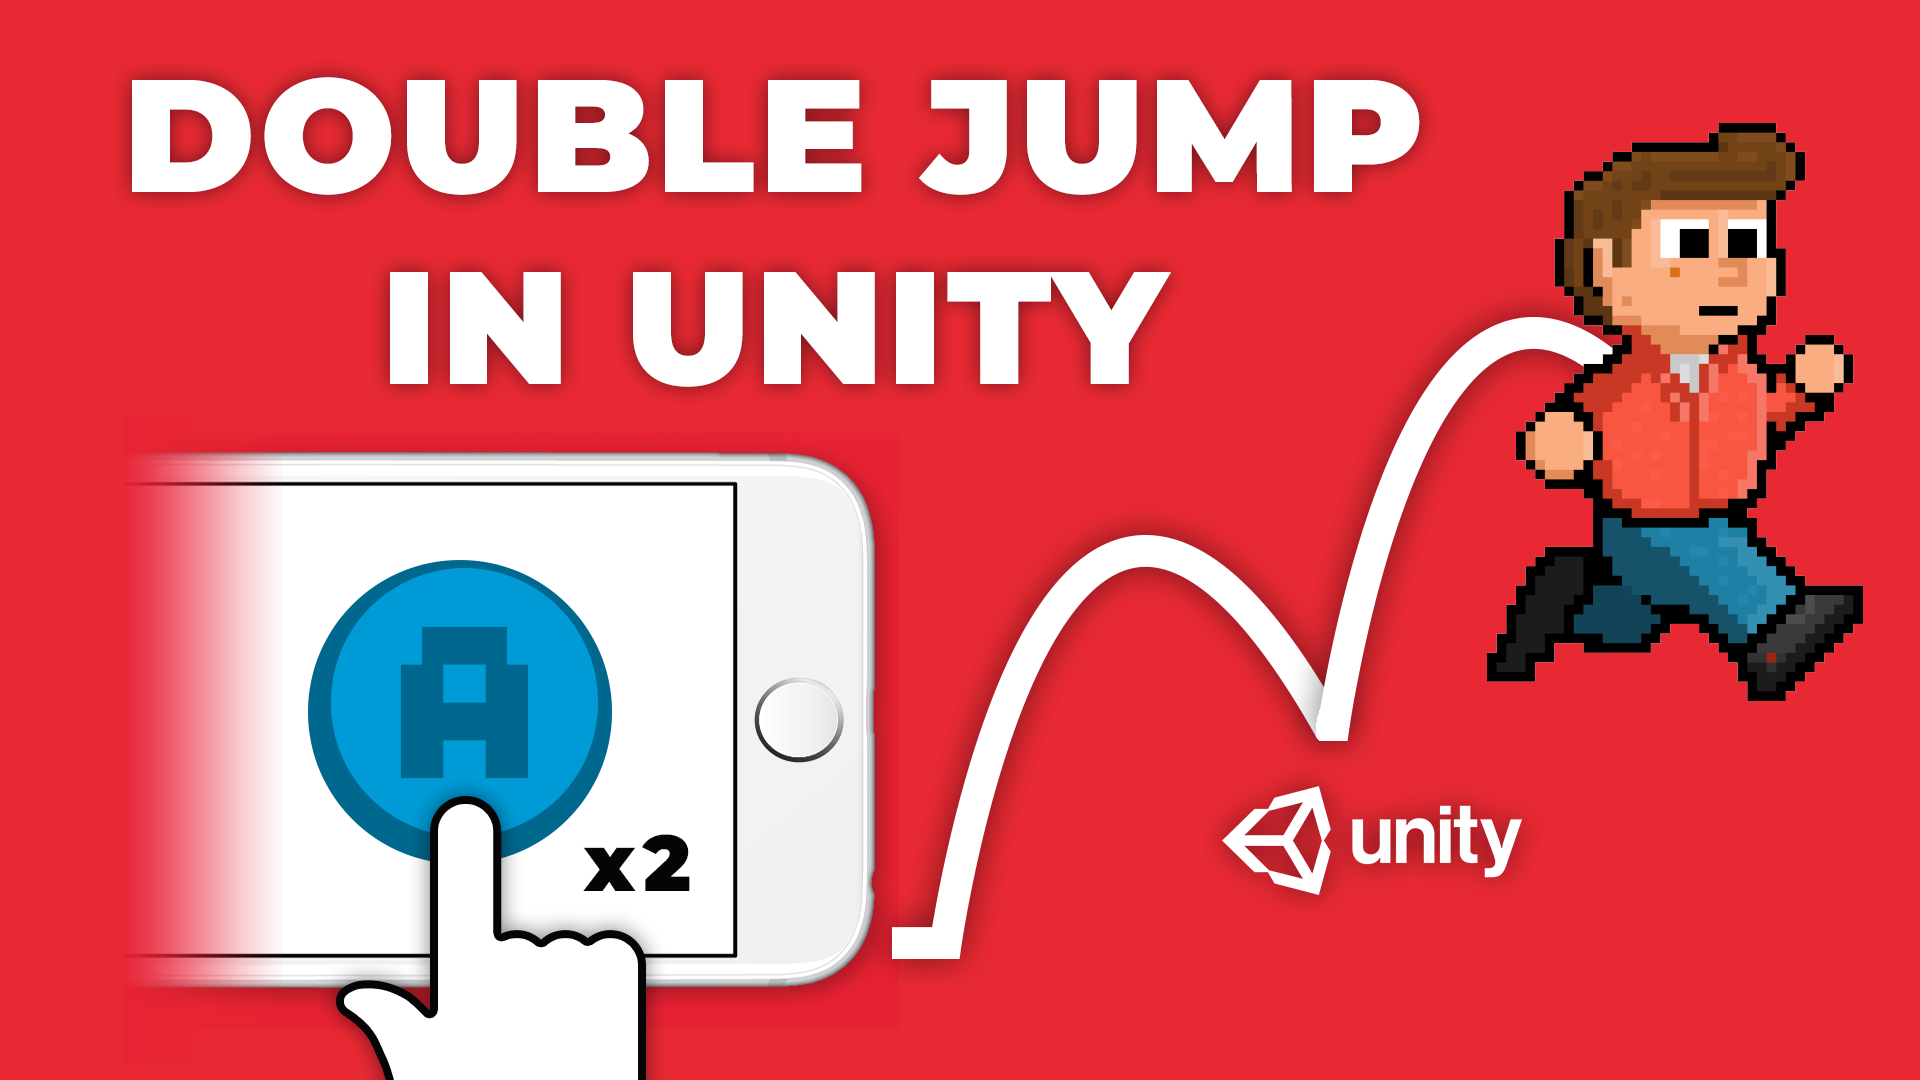 How To Double Jump - Learn How to do Multiple Jumps in Unity